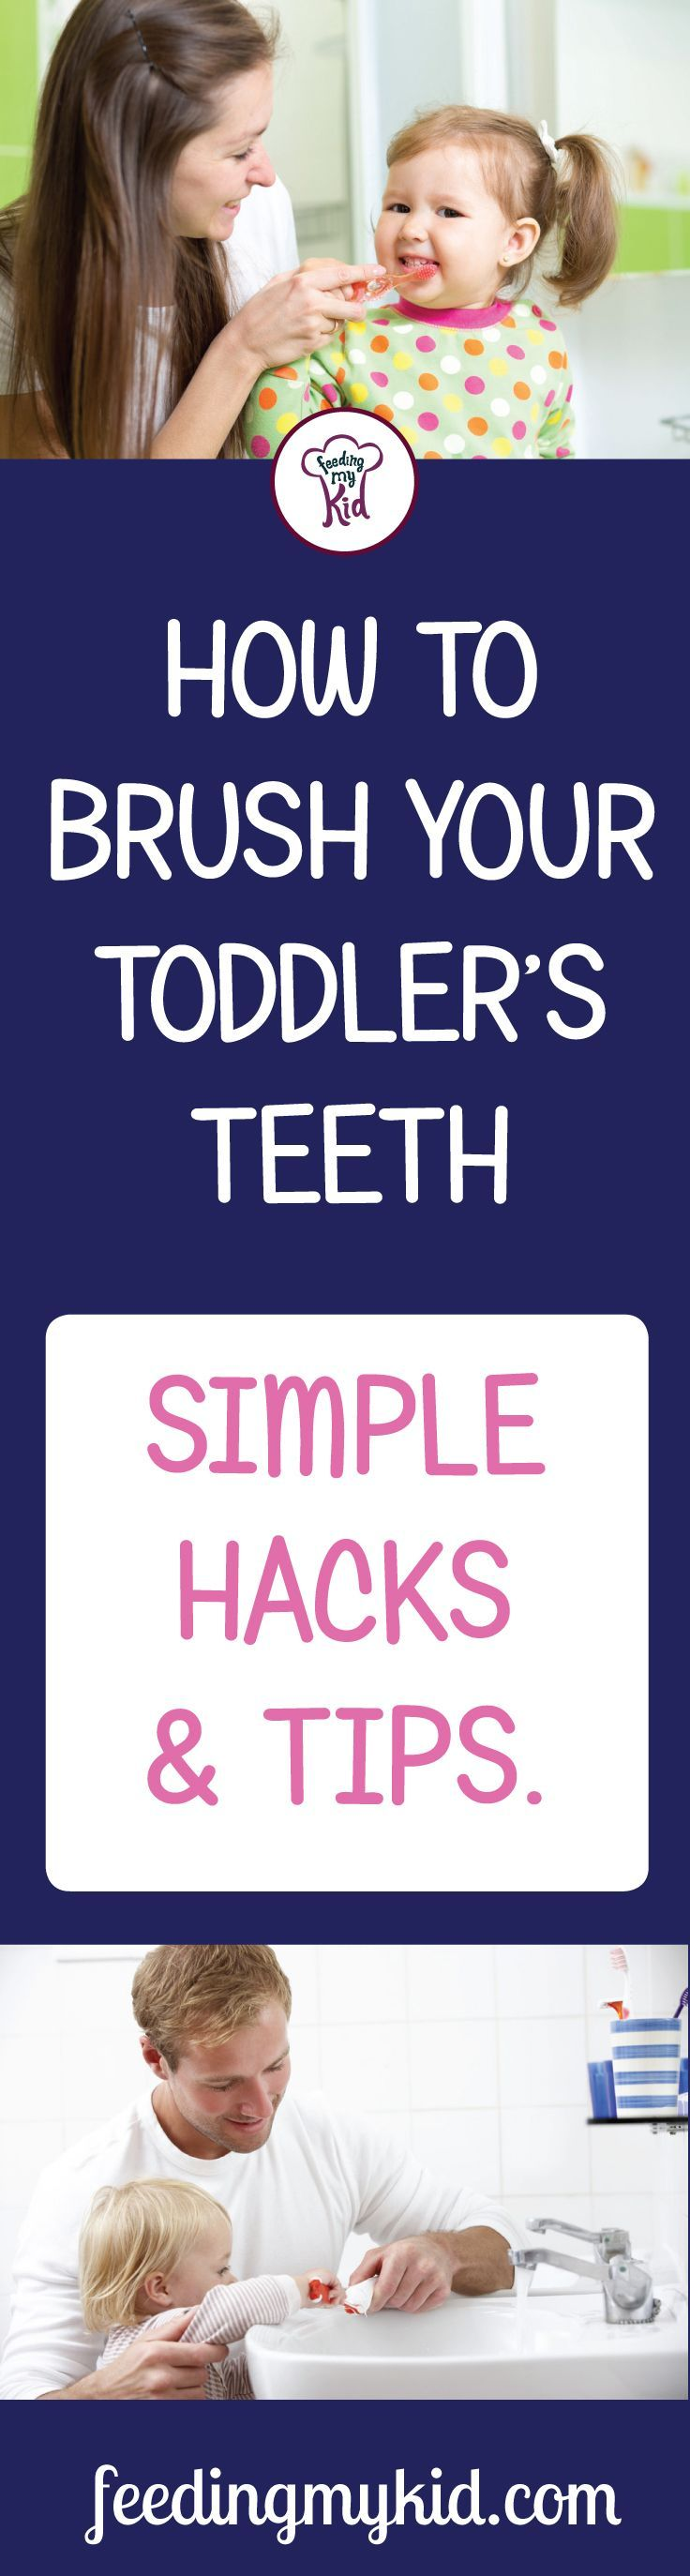 Learn how to brush teeth properly! In this article you'll learn everything you need to know to brush your toddler's teeth. Feeding My Kid is a filled with all the information you need about how to raise your kids, from healthy tips to nutritious recipes. #teeth #dentalcare #tips #parenting